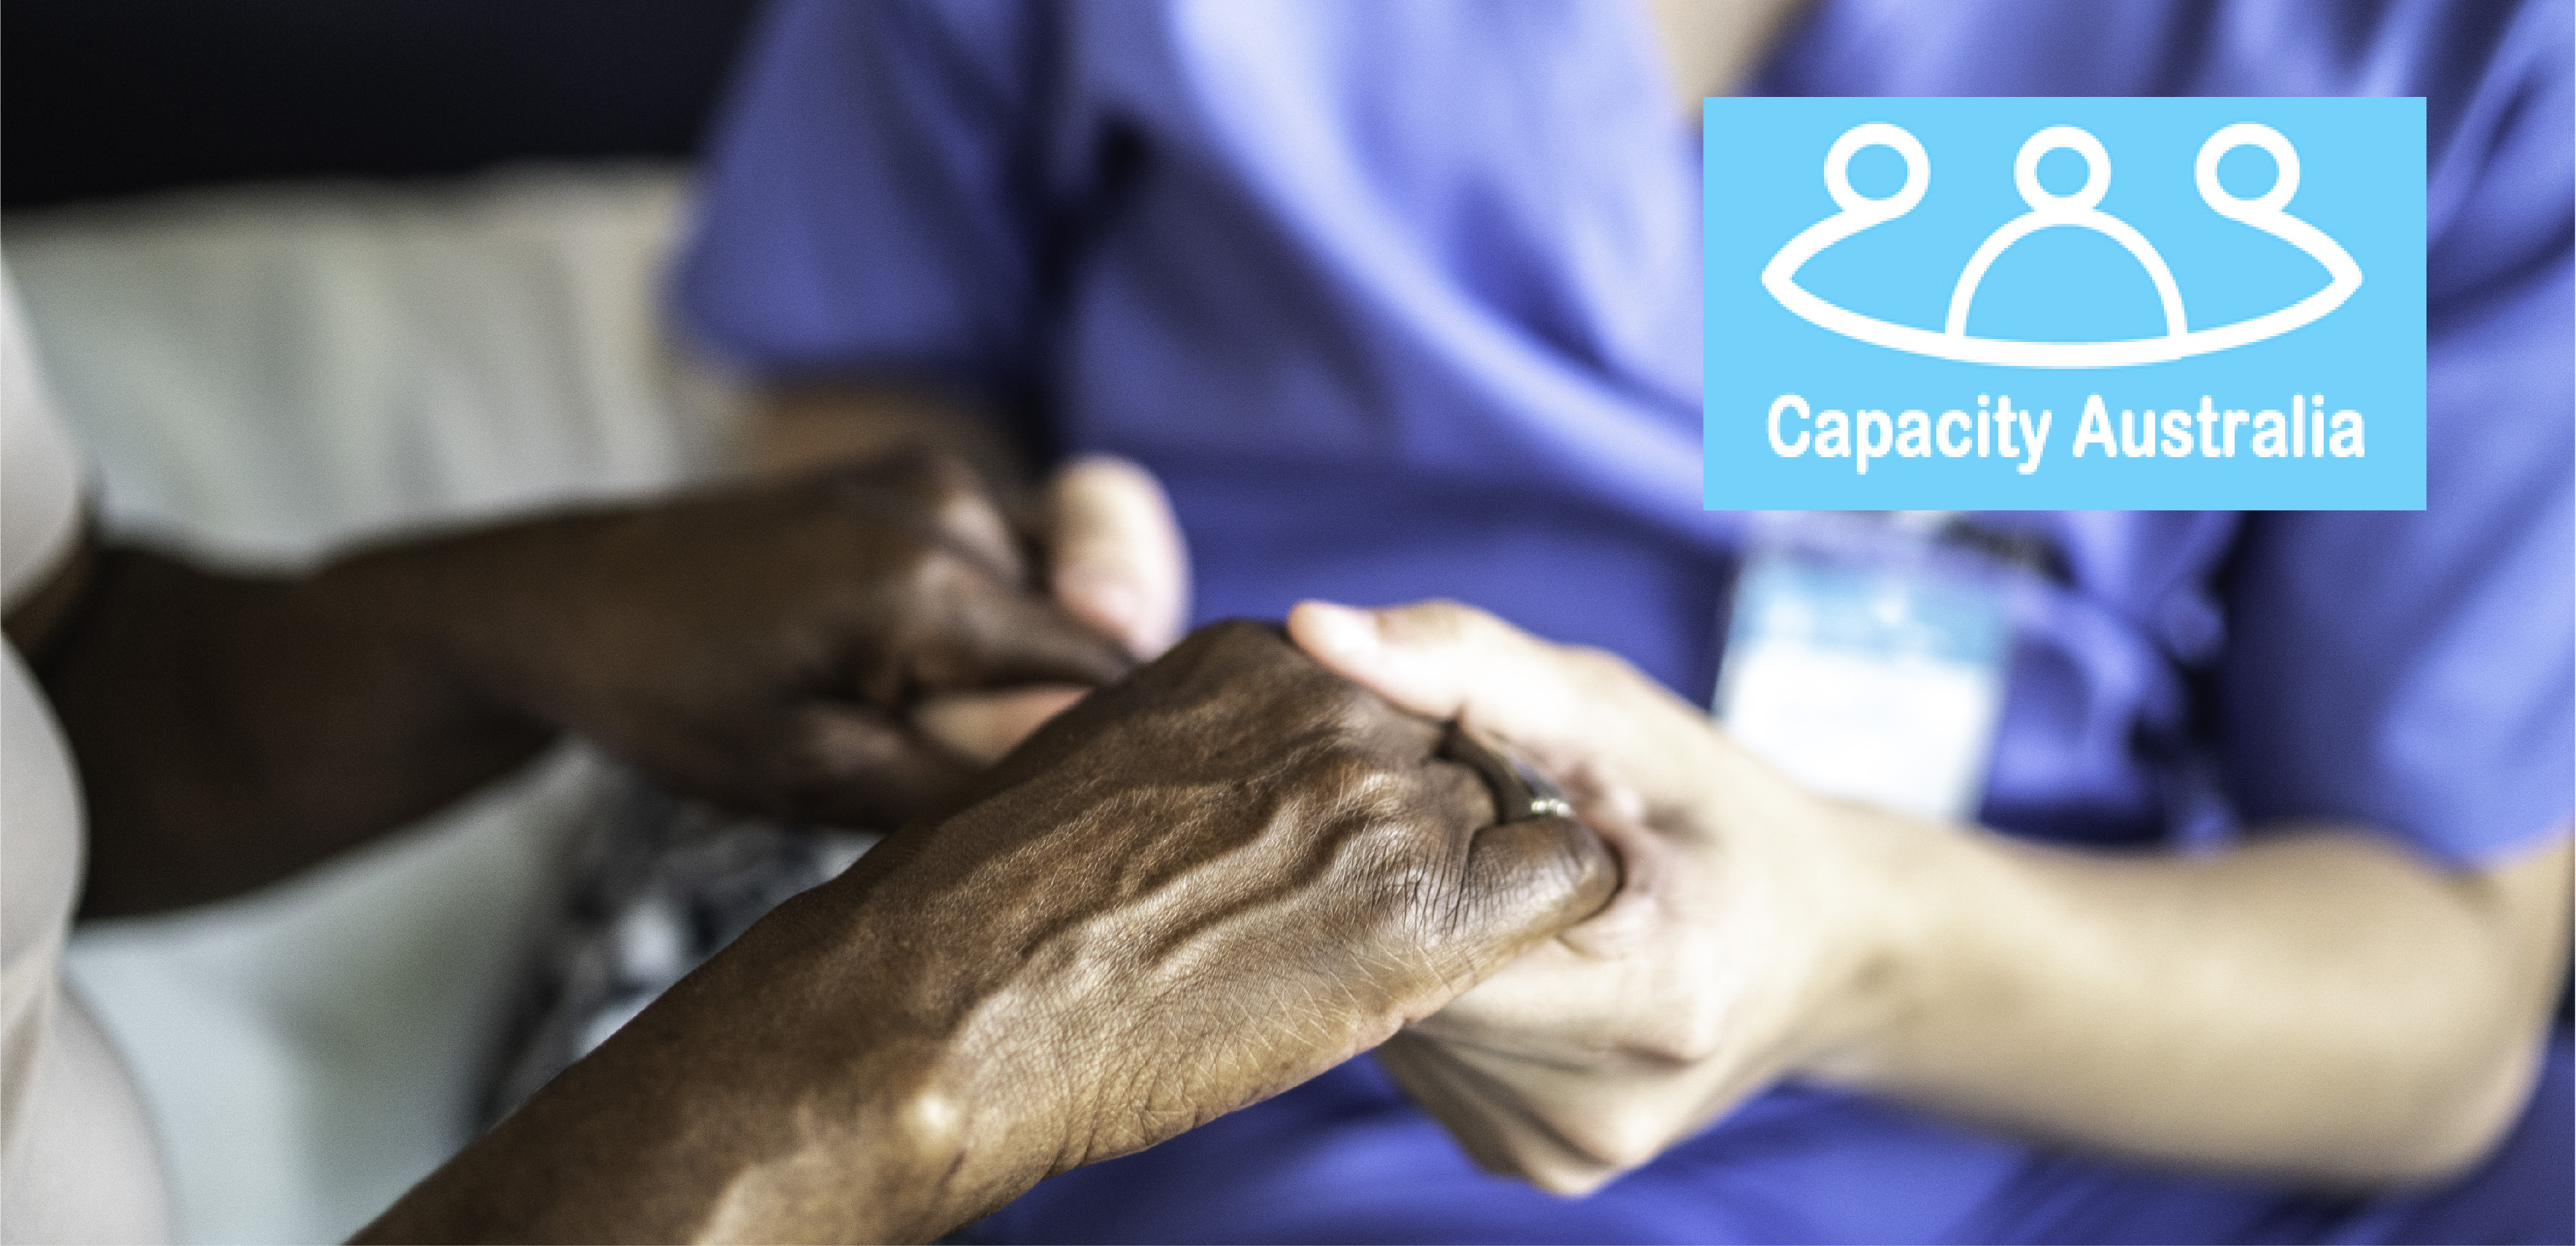 Capacity Australia logo over picture of nurse holding woman's hands